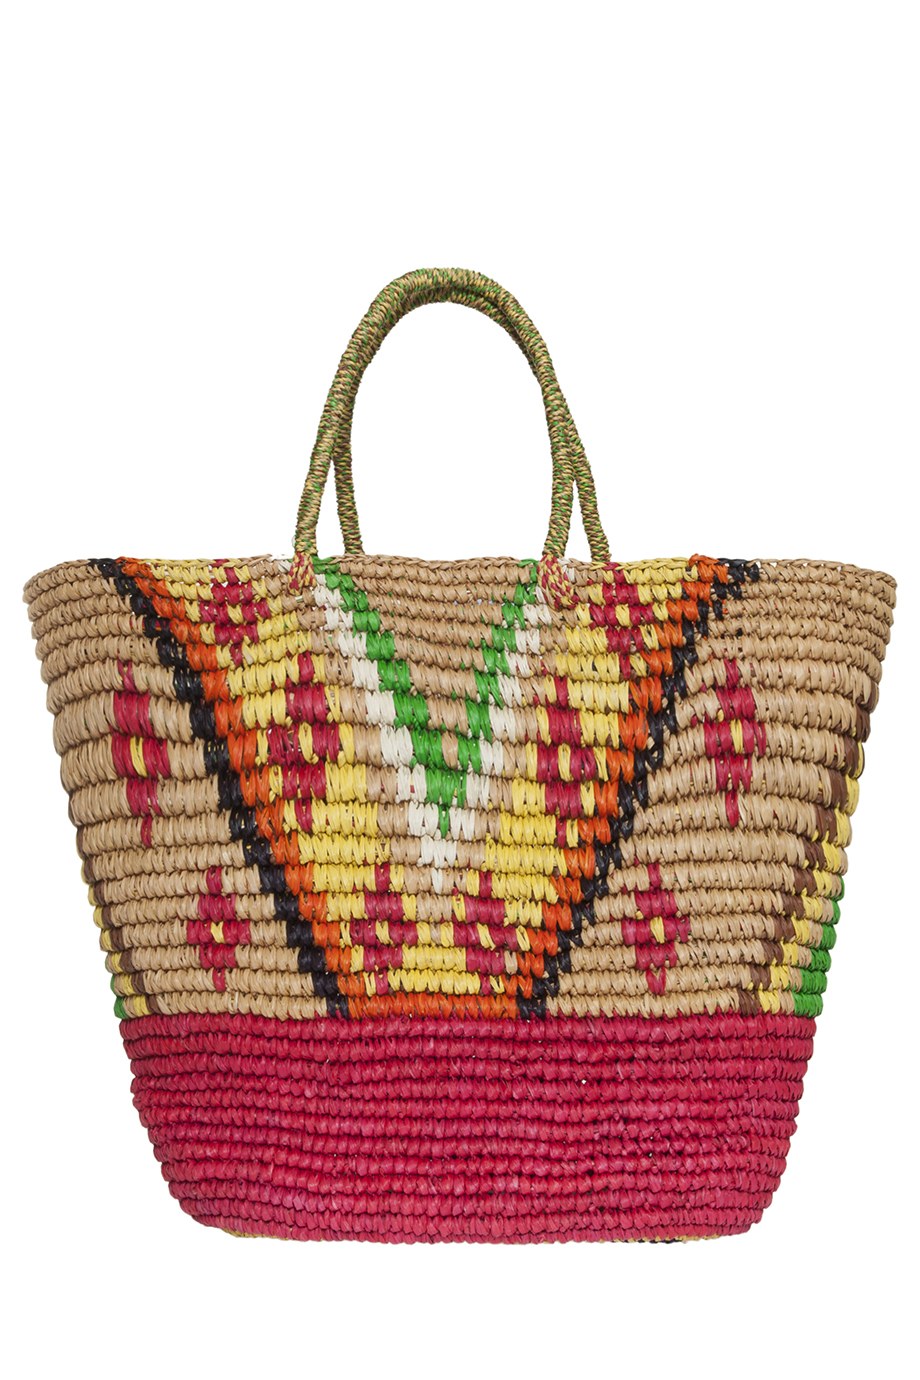 Sensi studio Tribal Straw Beach Bag | Lyst